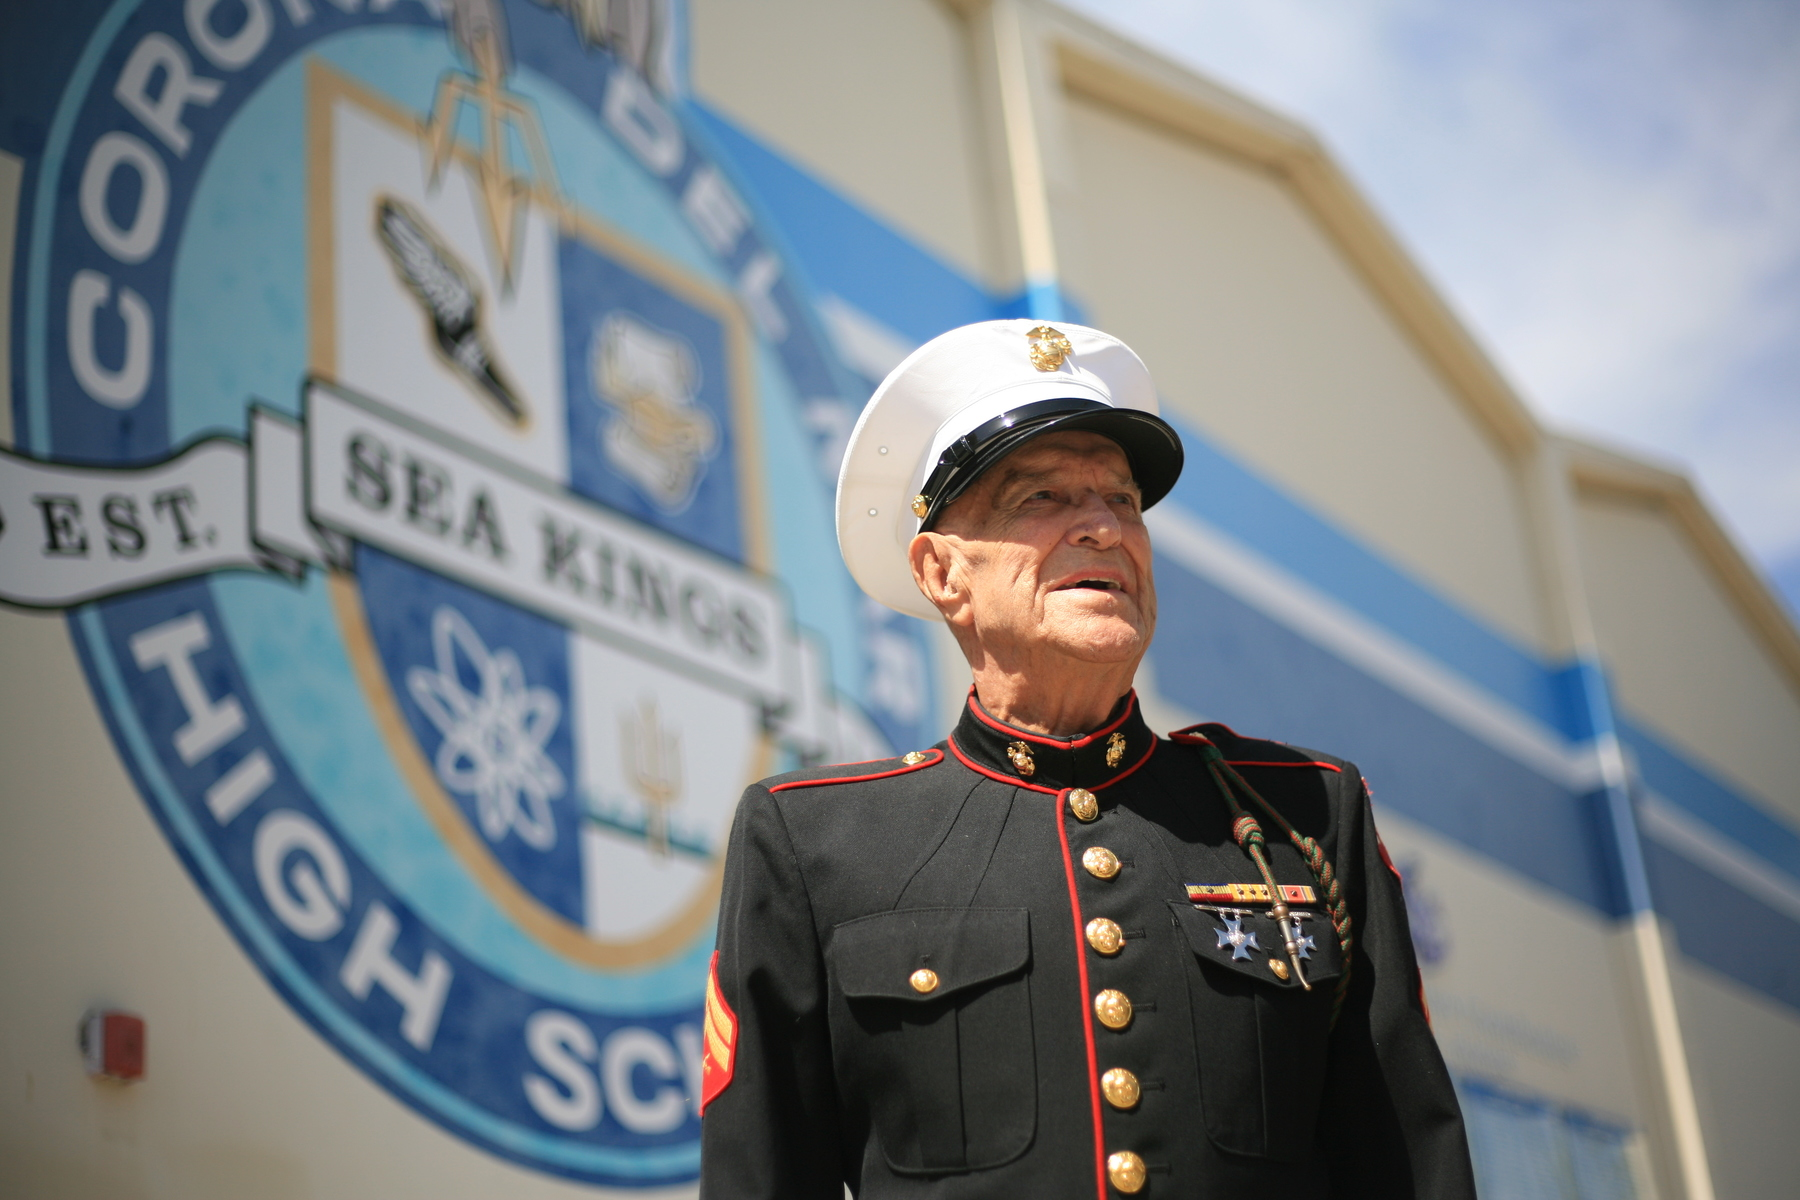 Marine Corps veteran Dick Meadows